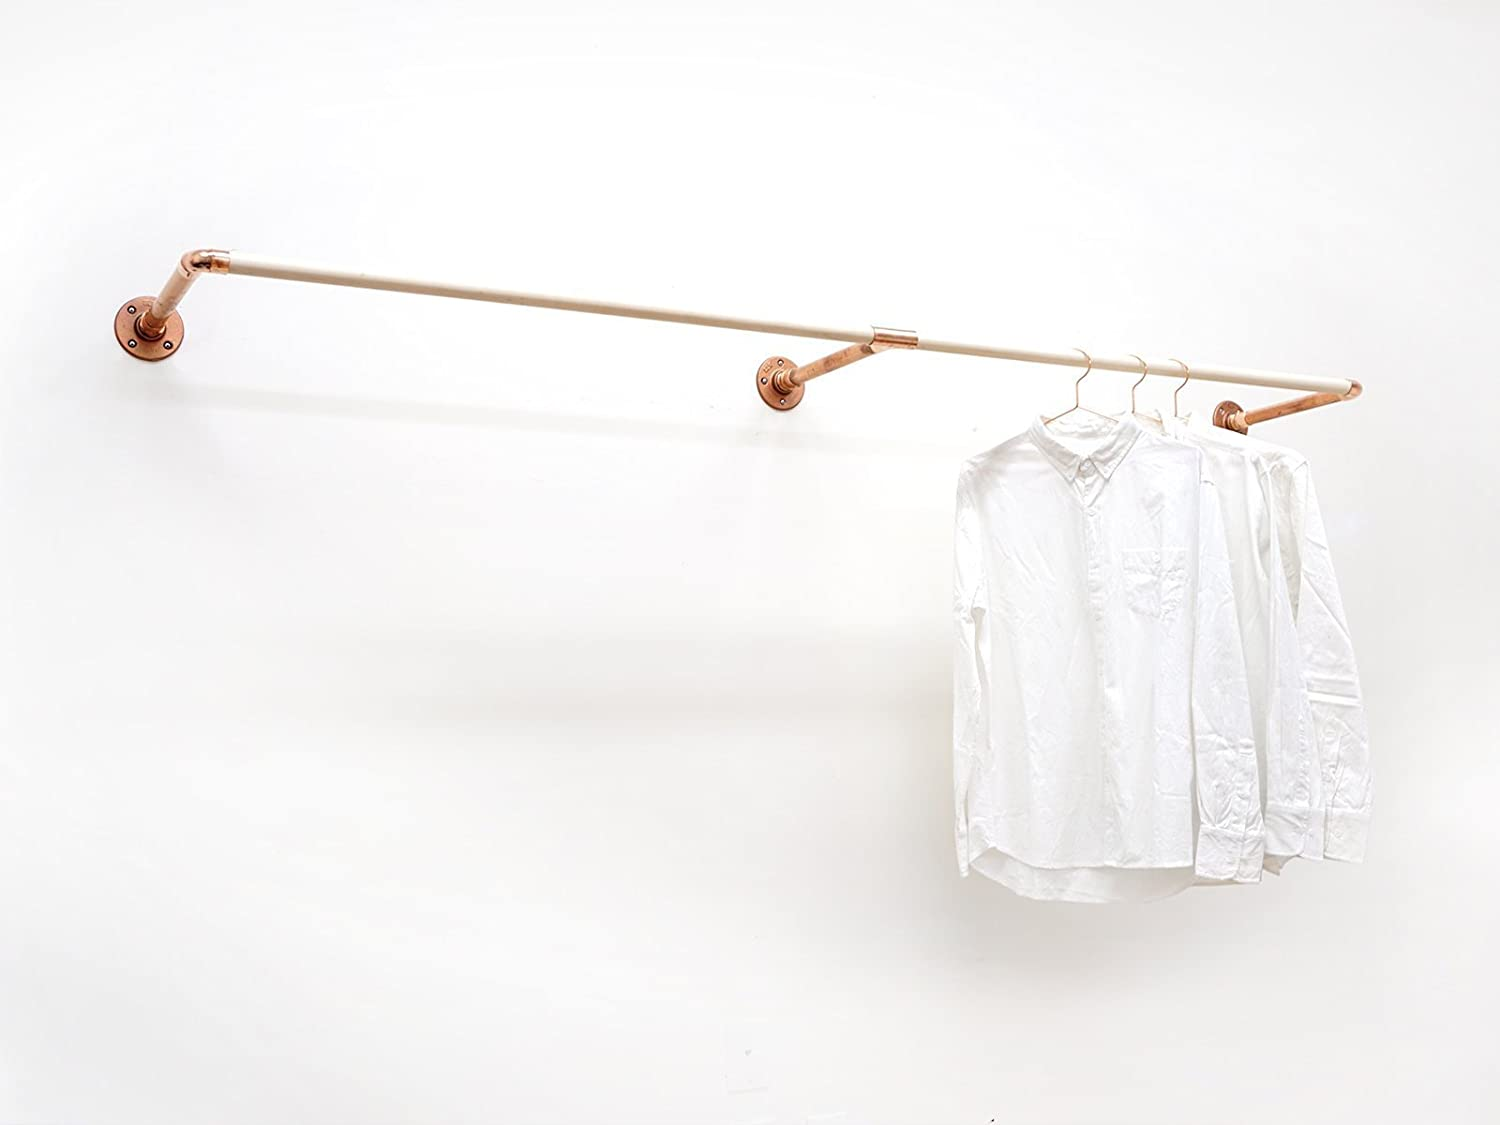 W-Rack • Wall Mount Clothing/Garment Rack • Copper and Wood